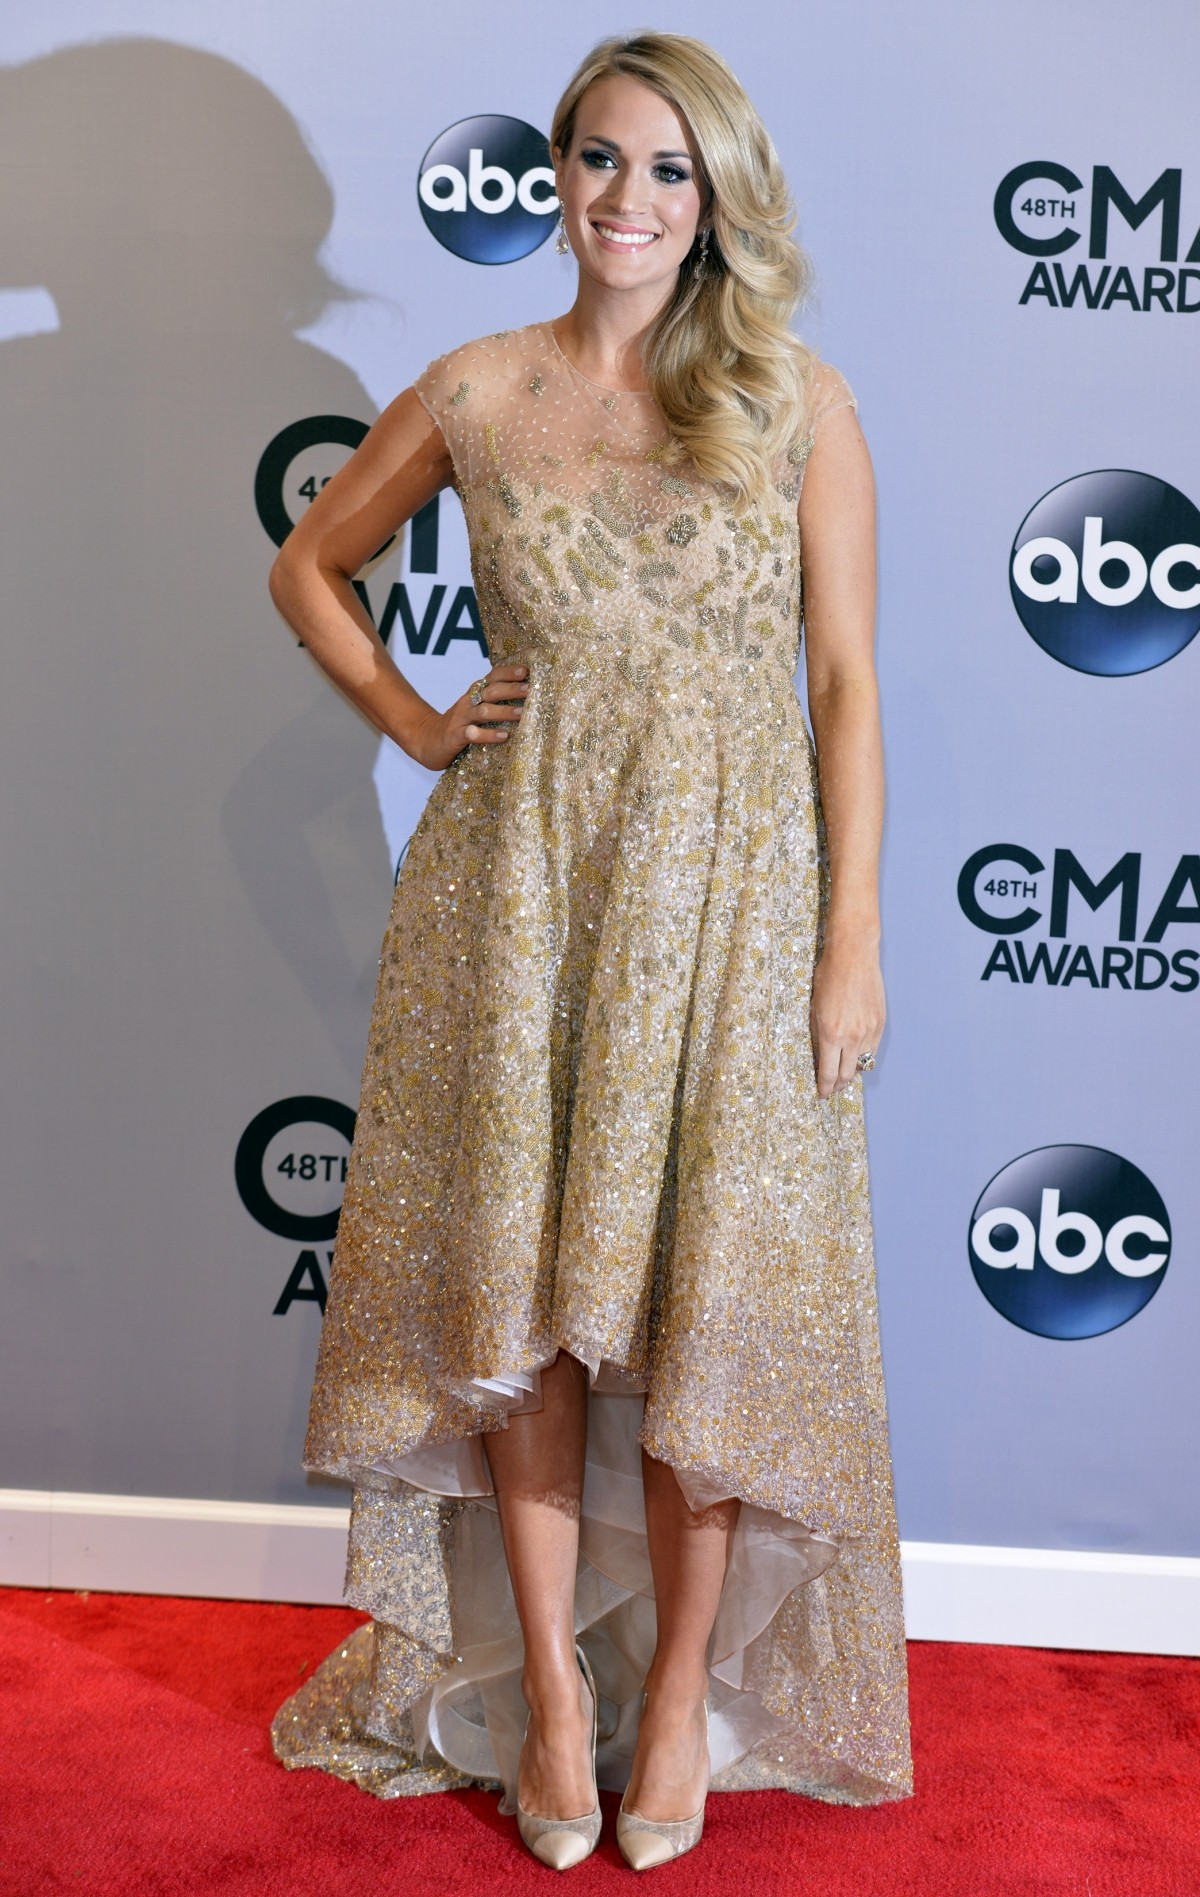 Carrie Underwood at CMA red carpet